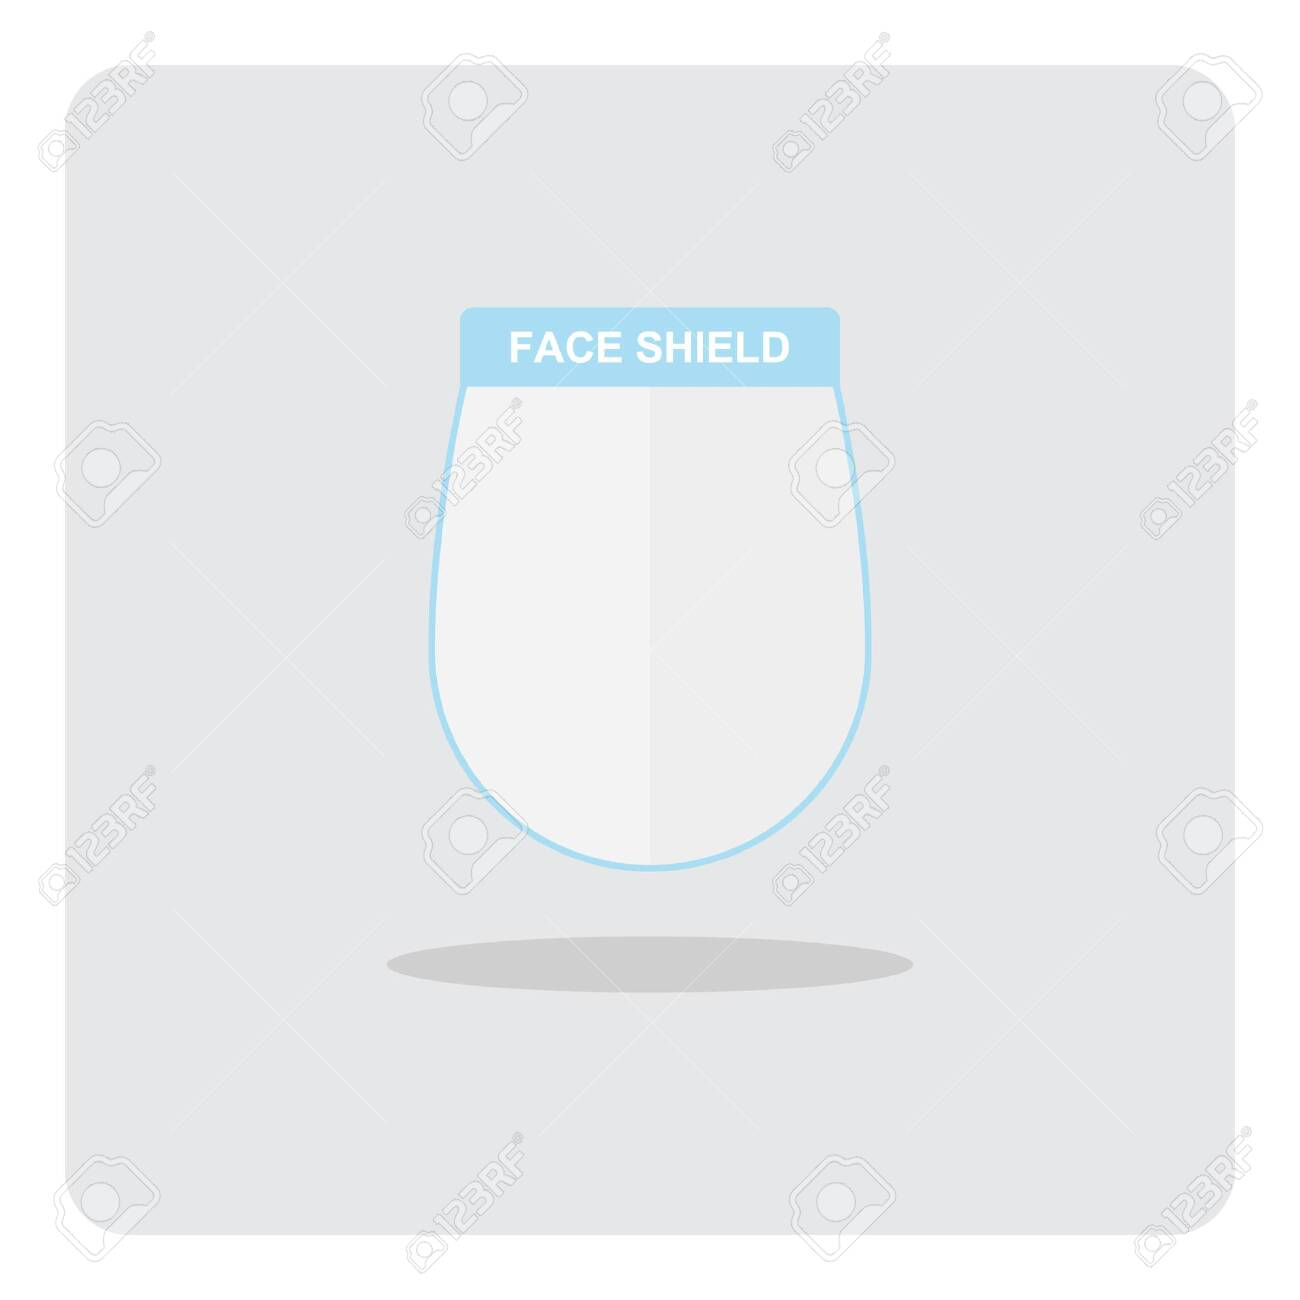 Medical Face Shield for protection Coronavirus 2019 (COVID-19) disease, Vector design of flat icon on isolated background. - 145764244